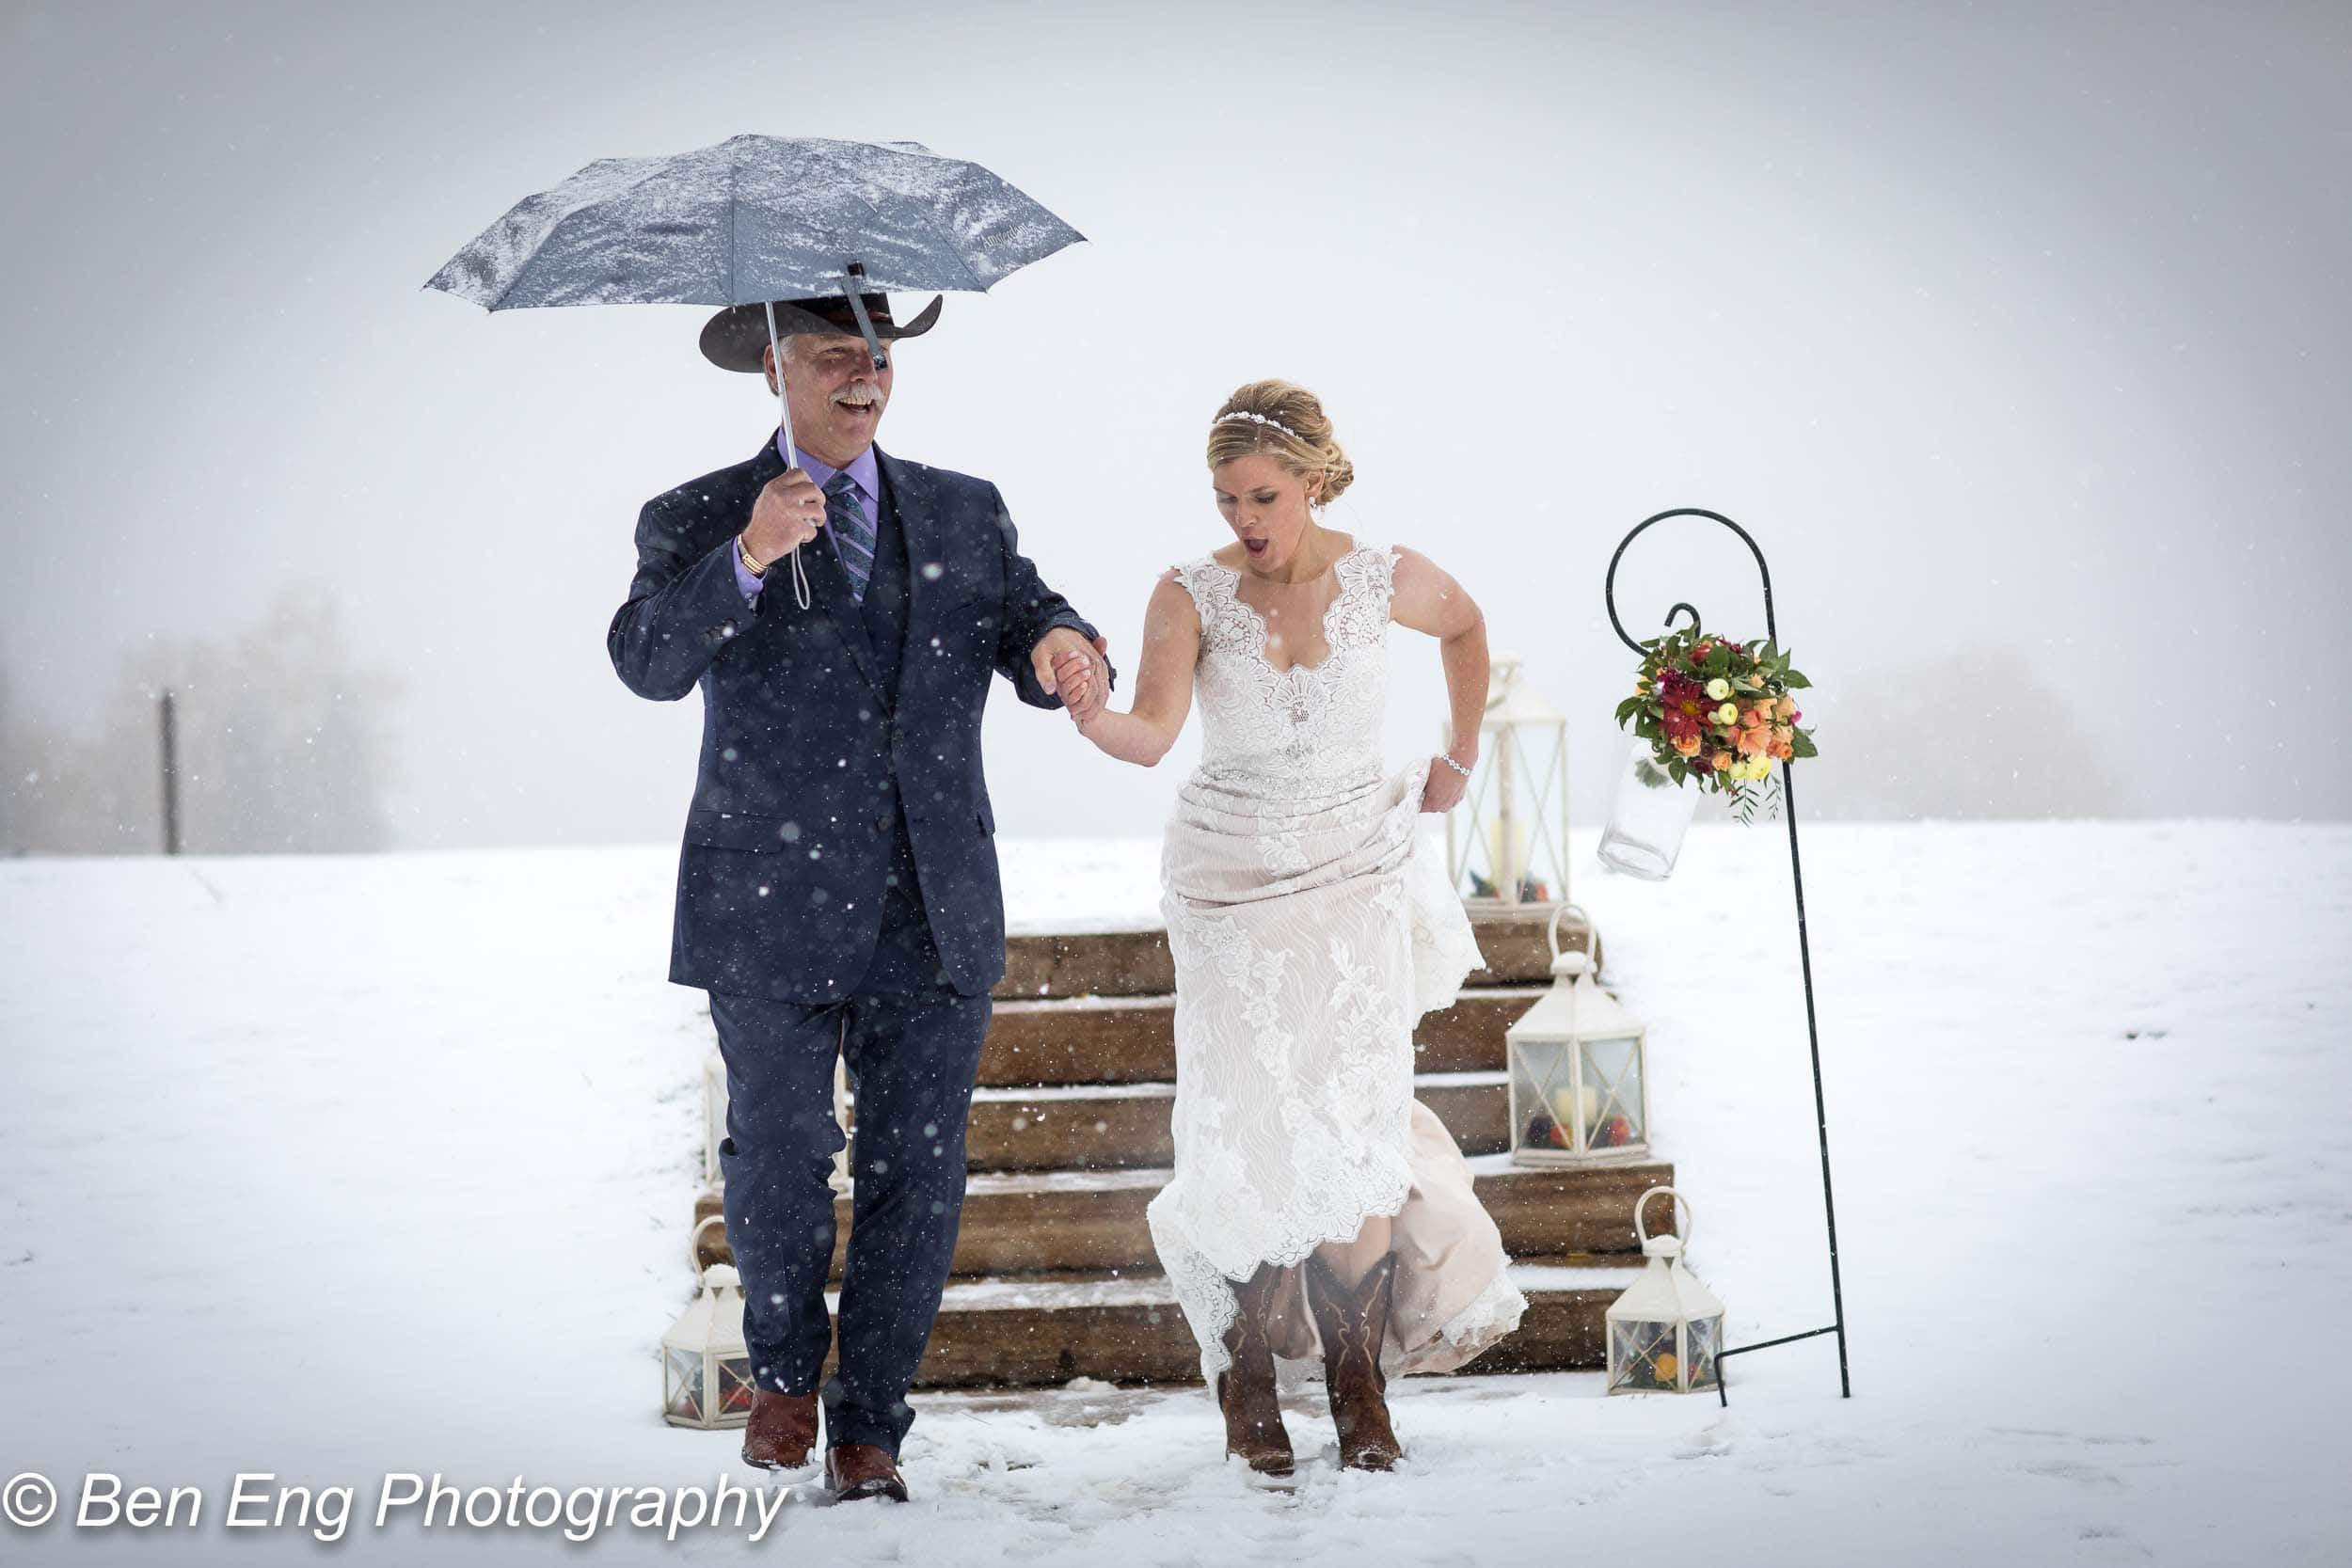 Mike and Kelly's surprise winter wedding at the San Sophia Overlook in Telluride, CO.